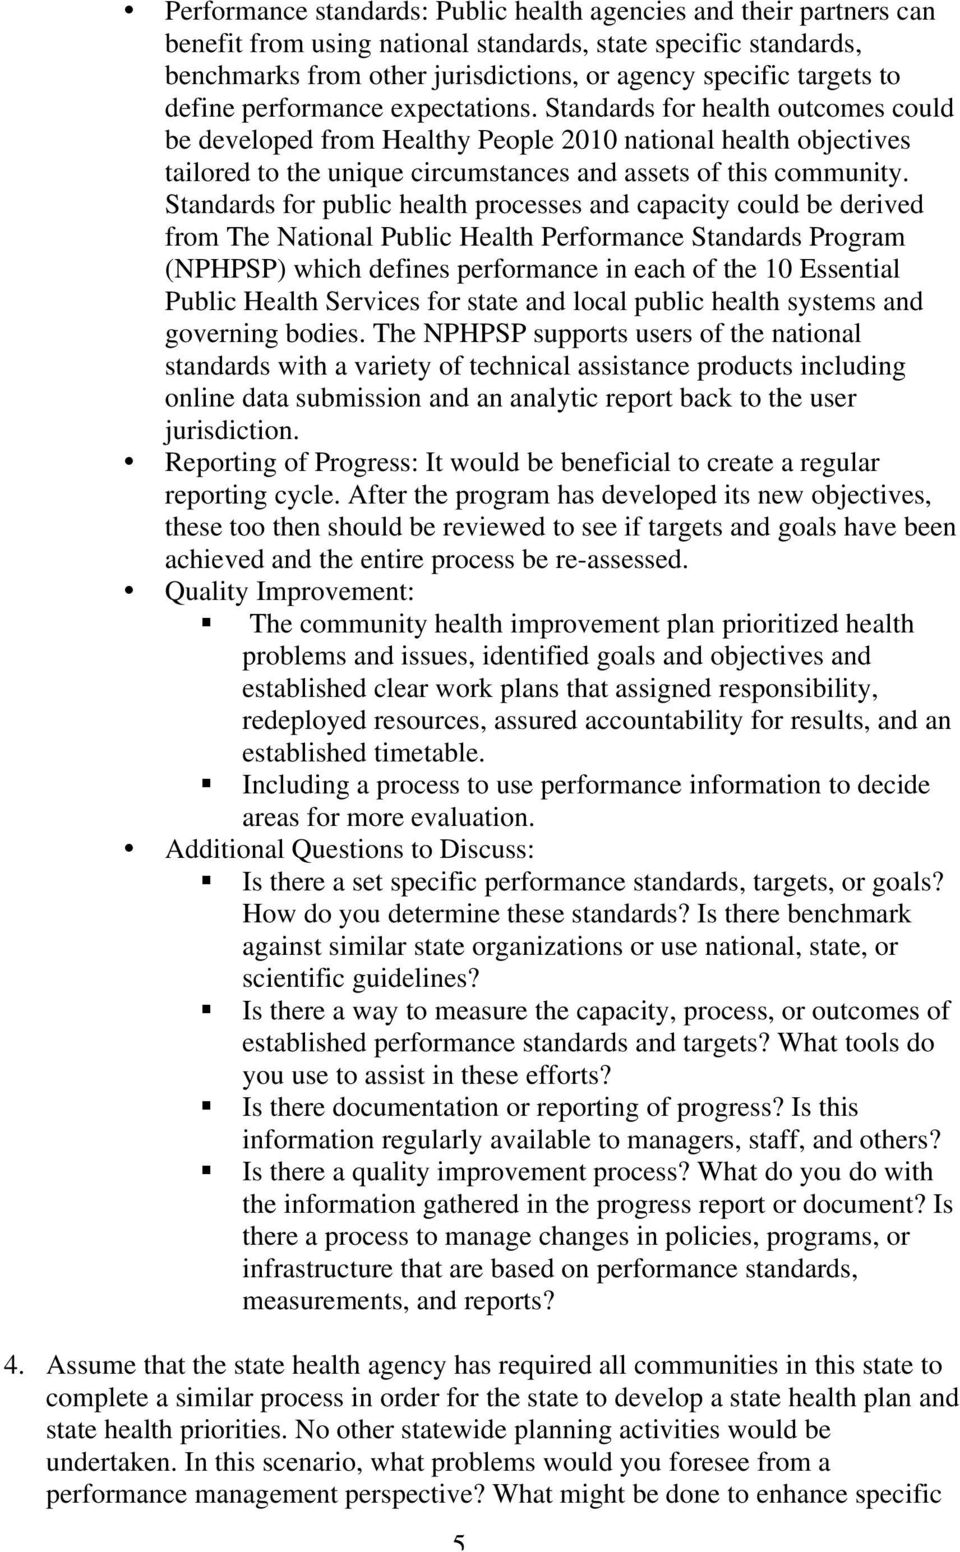 Standards for health outcomes could be developed from Healthy People 2010 national health objectives tailored to the unique circumstances and assets of this community.